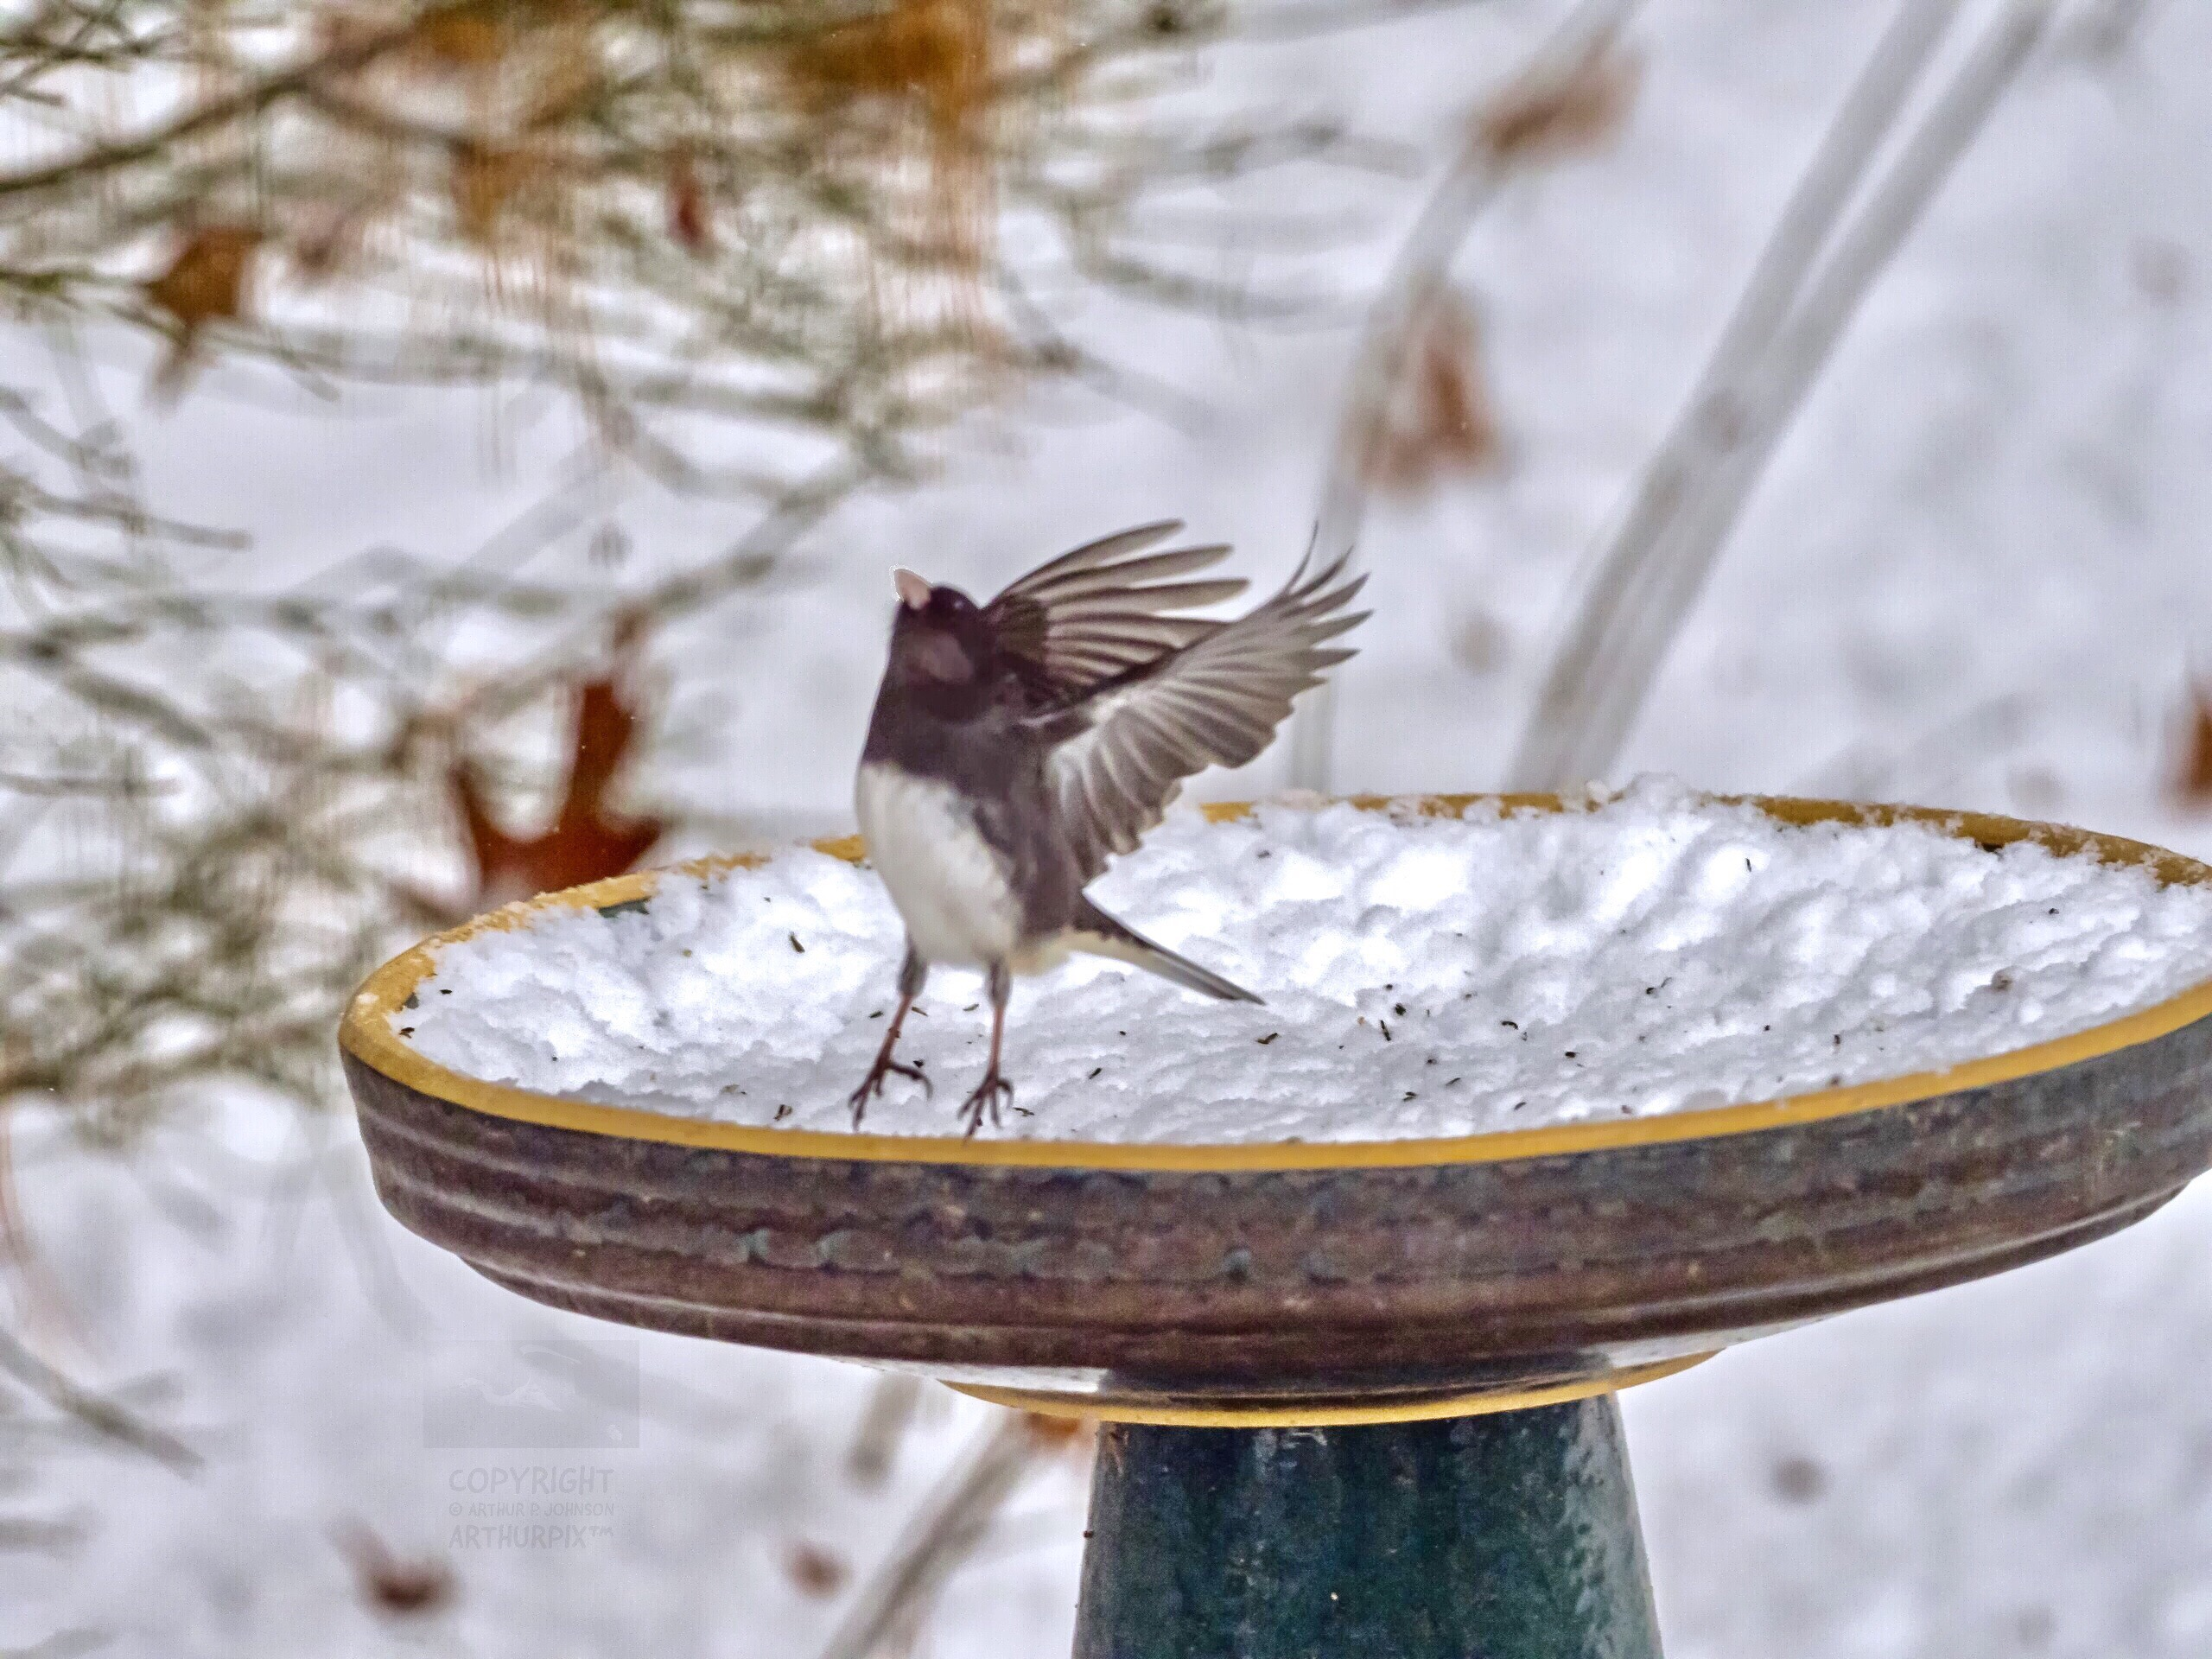 A Dark-Eyed Junco Taking Flight from Snow-Filled Bird Batg